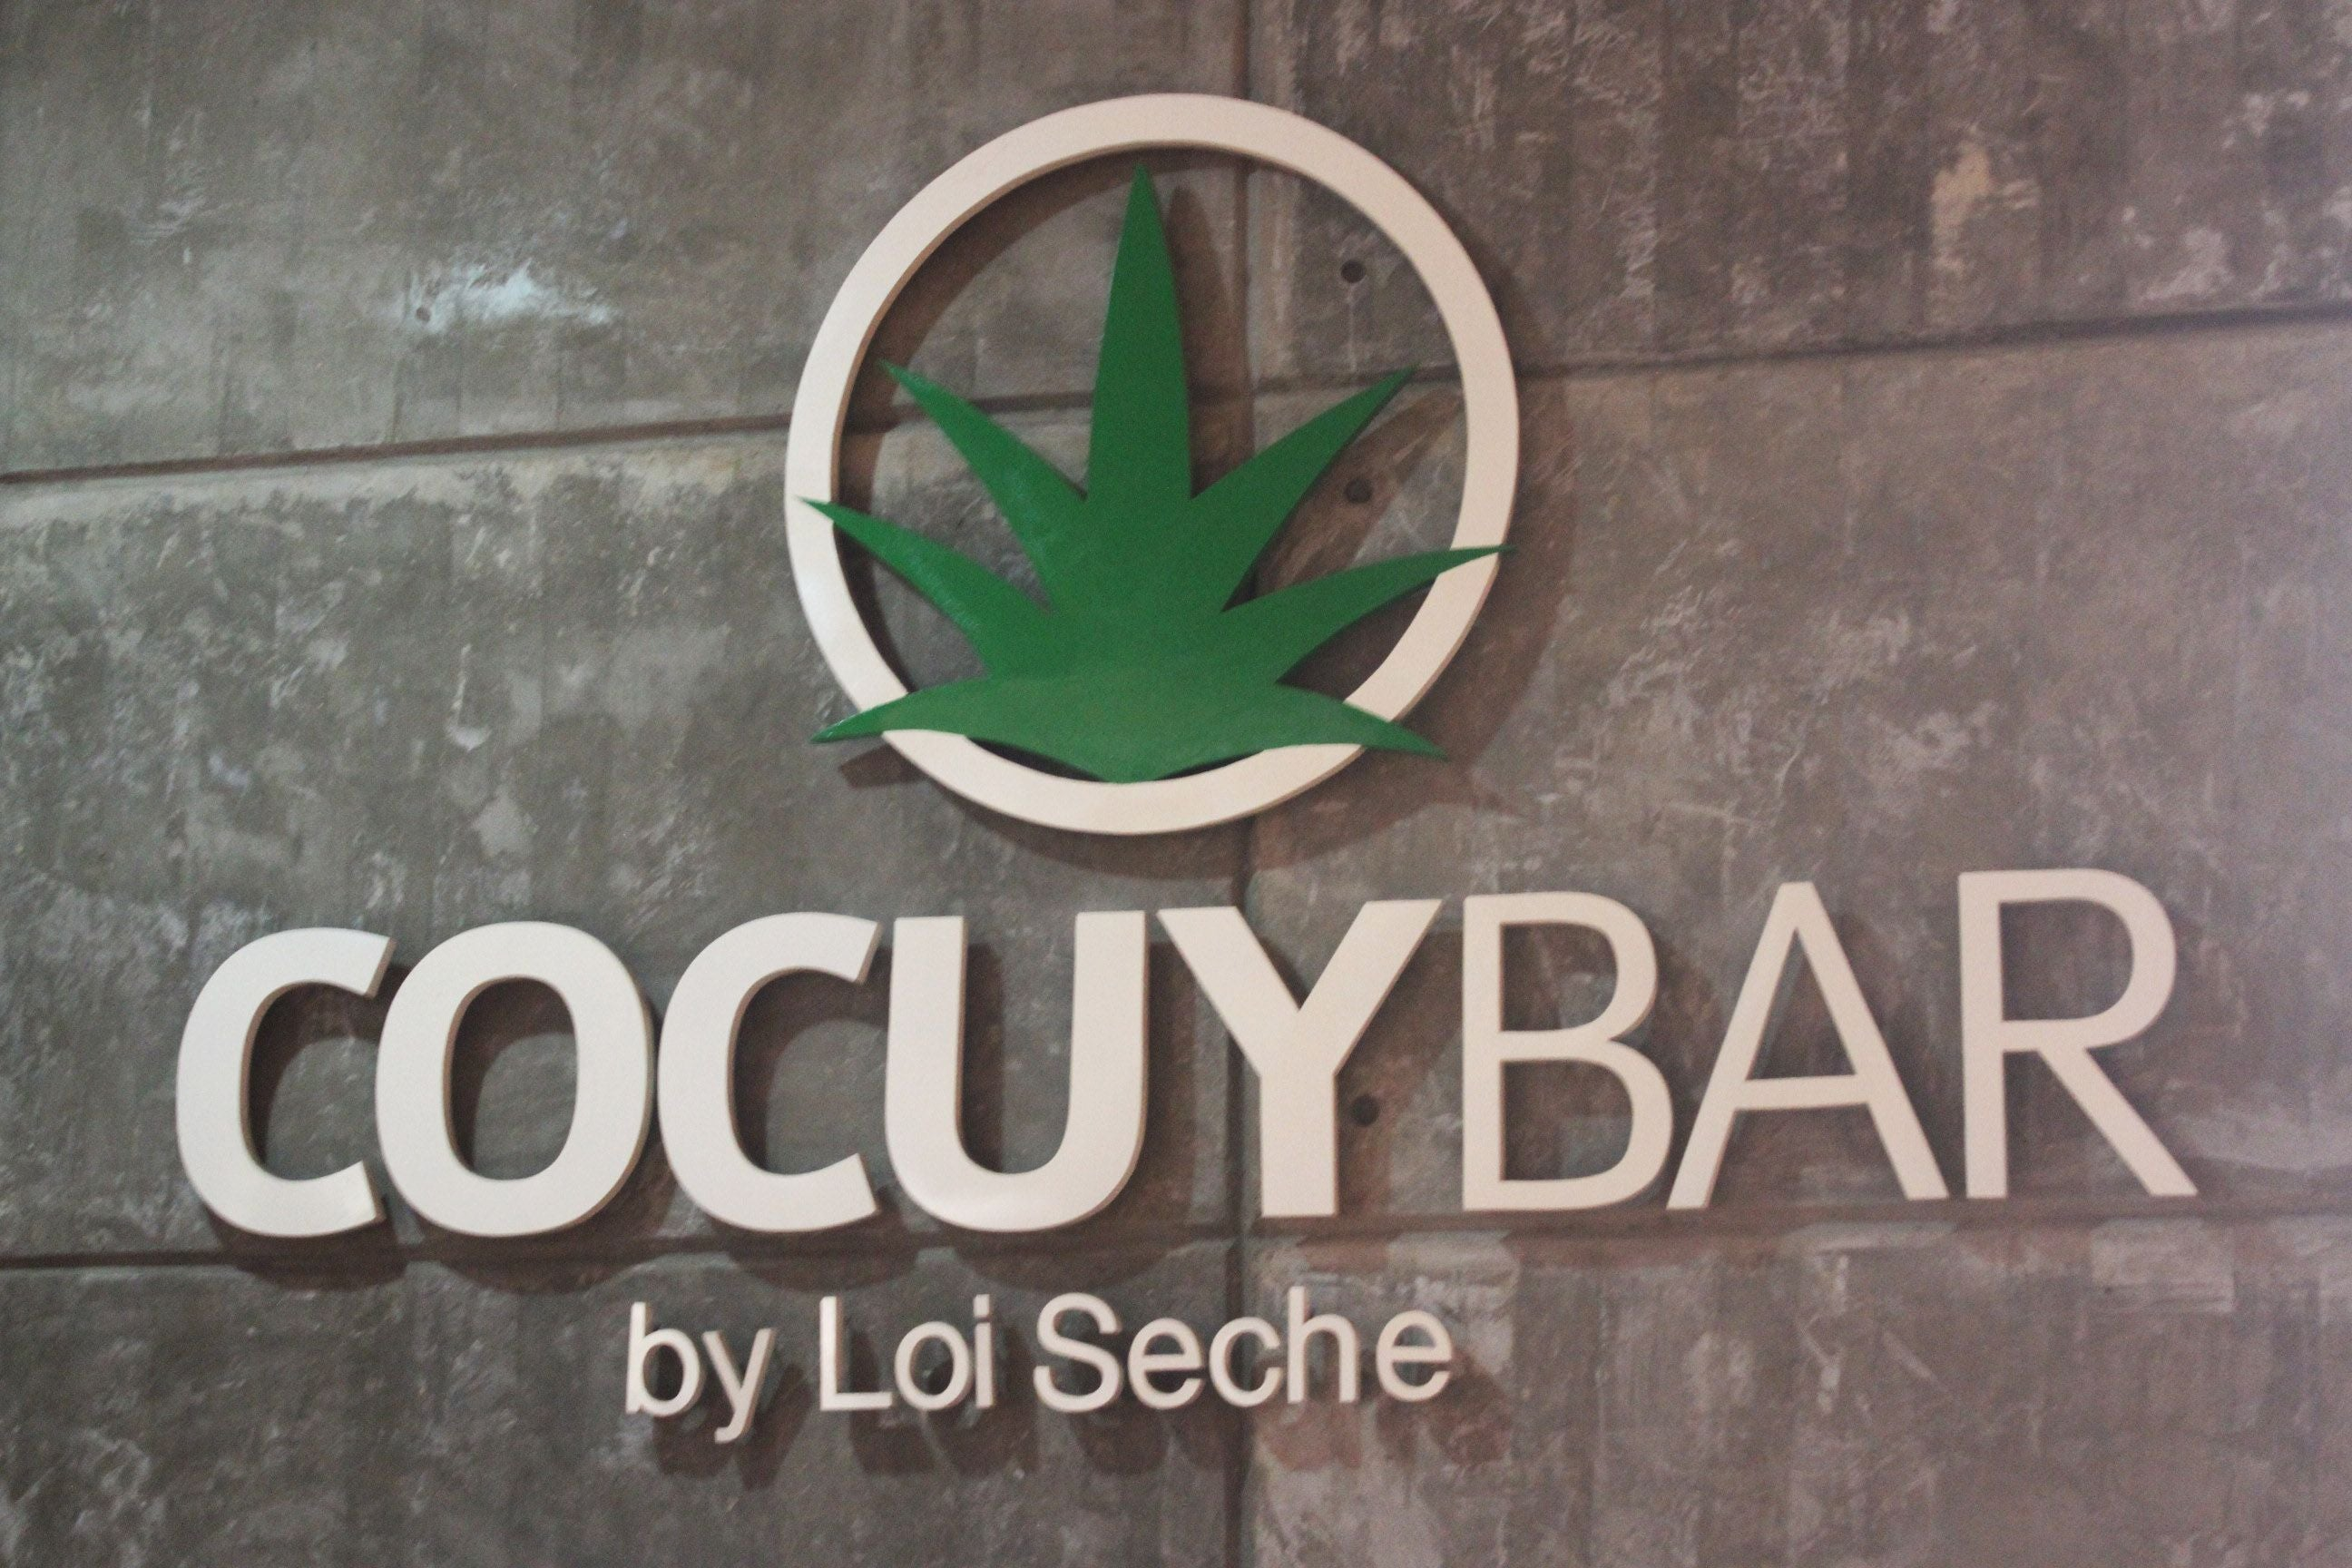 Signage in Cocuy Bar